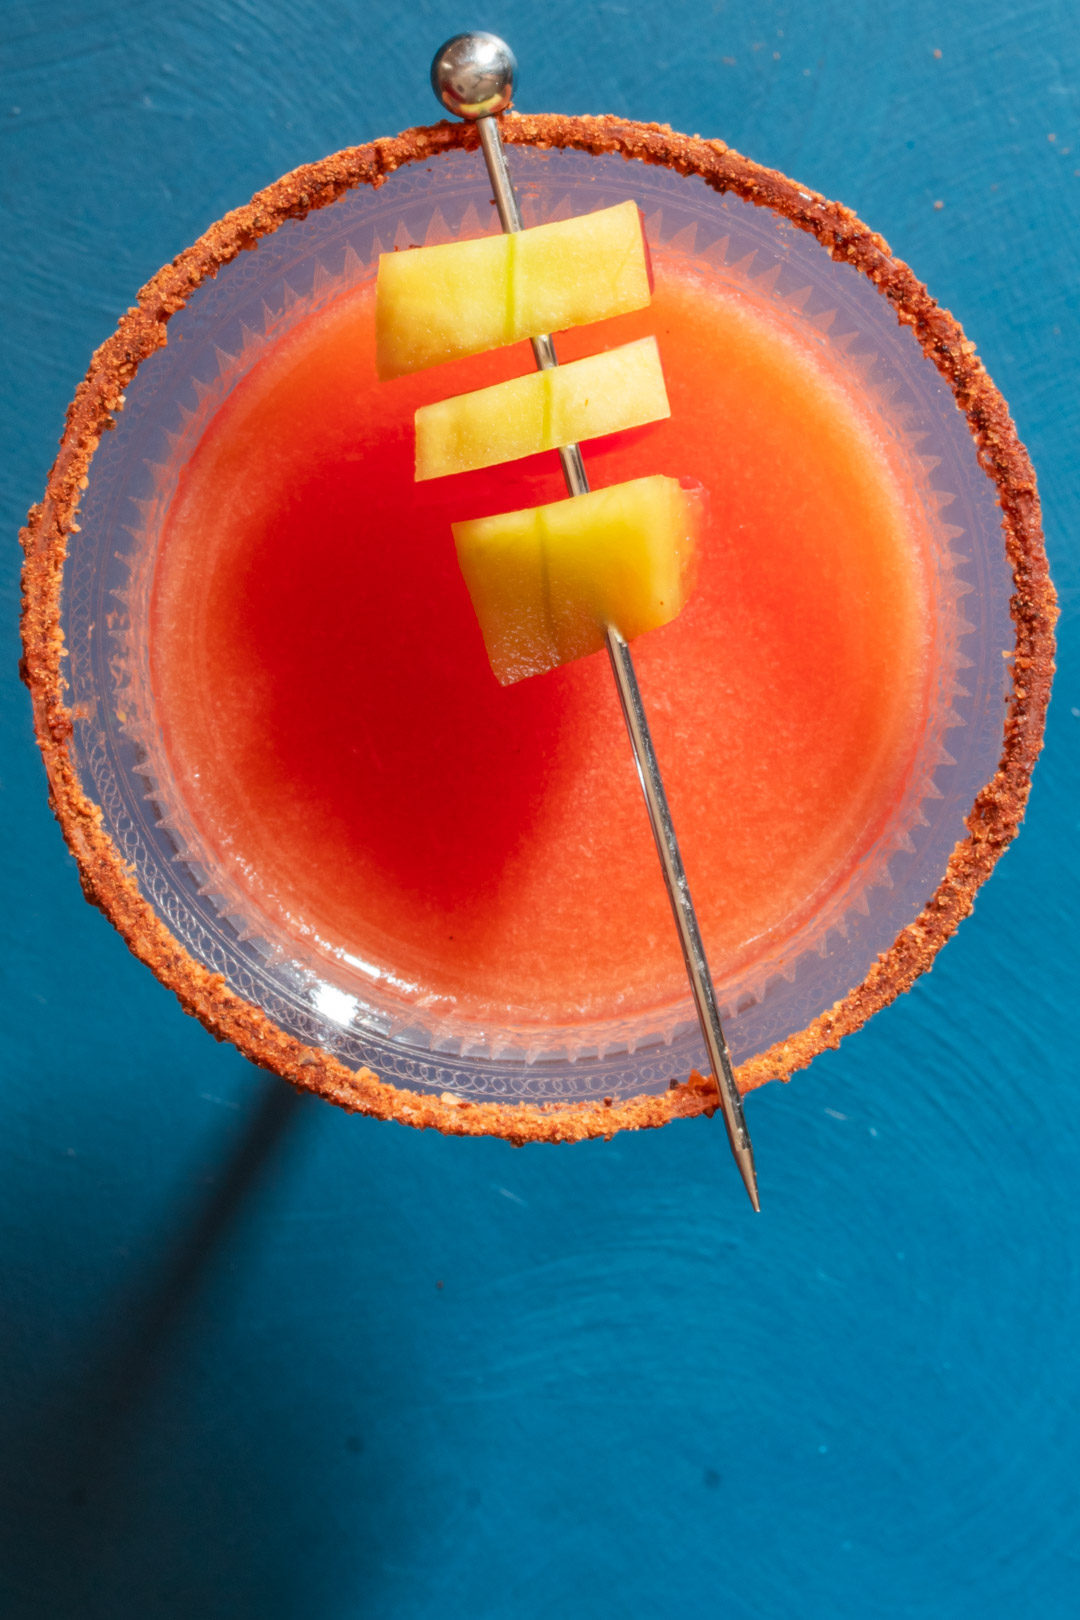 Pickled watermelon rind margarita cocktail with chili-lime-cinnamon salt: from above with small shadow